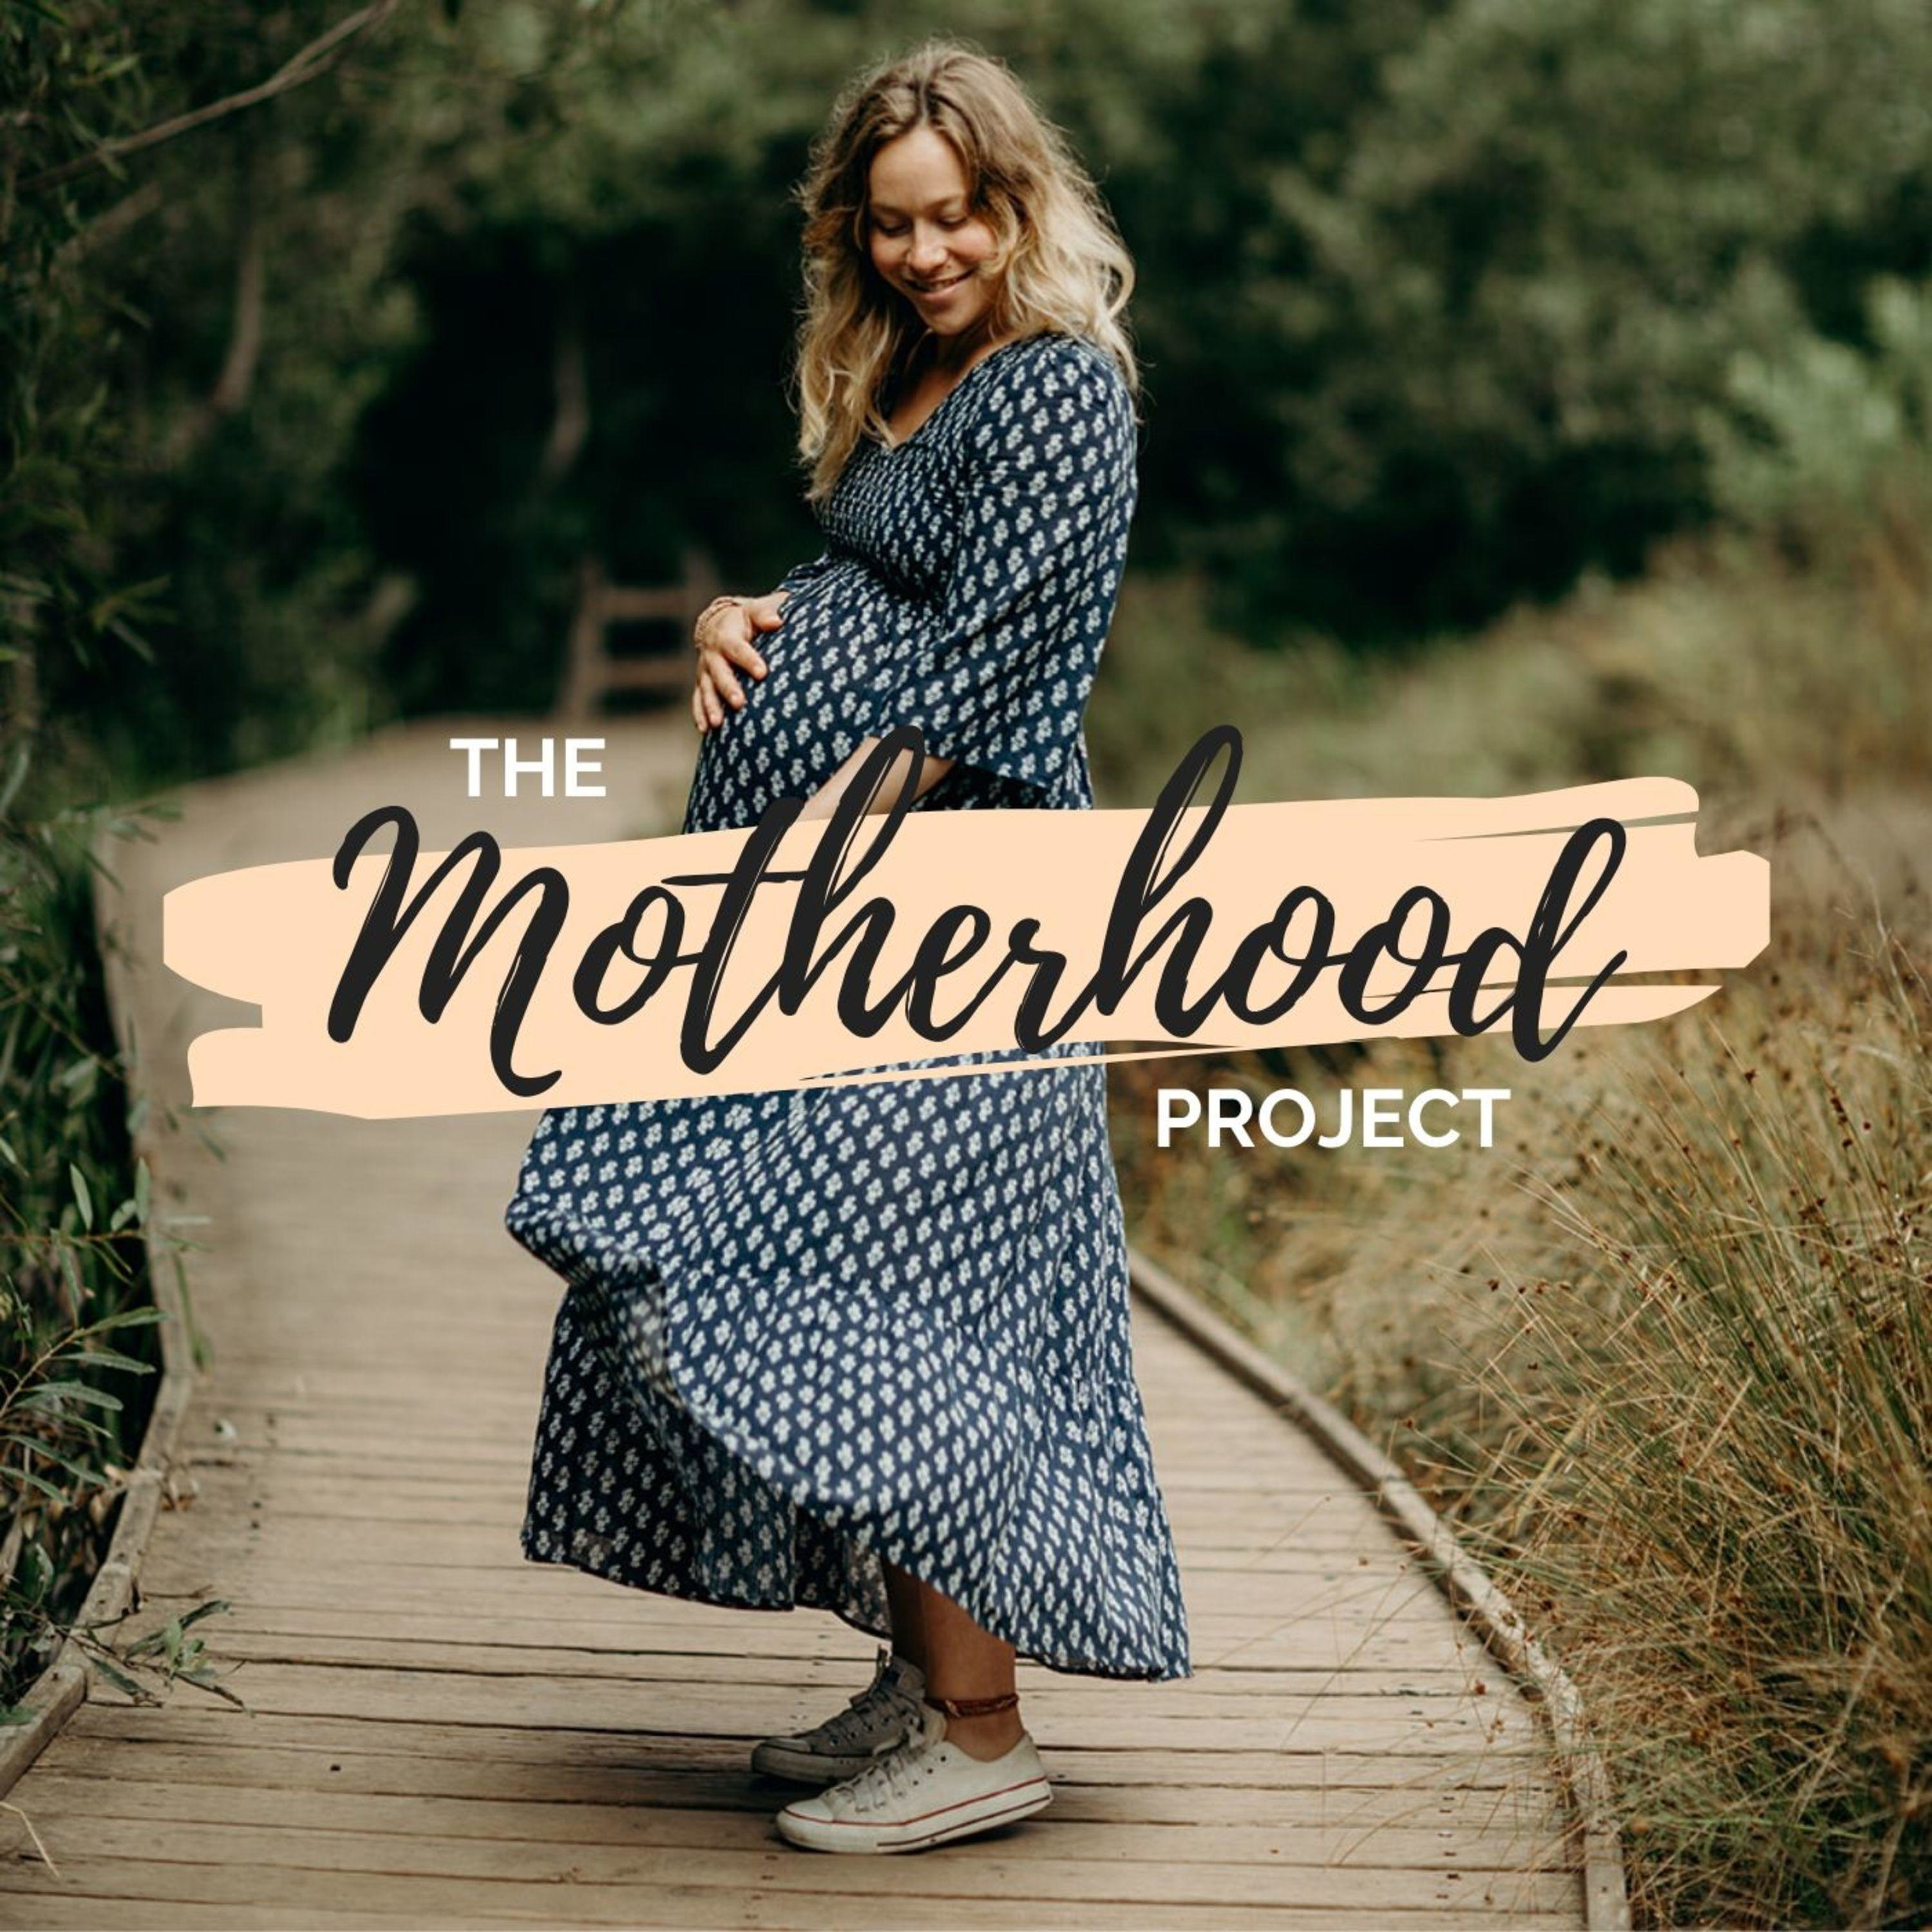 The Motherhood Project with Taylor Pangman podcast show image